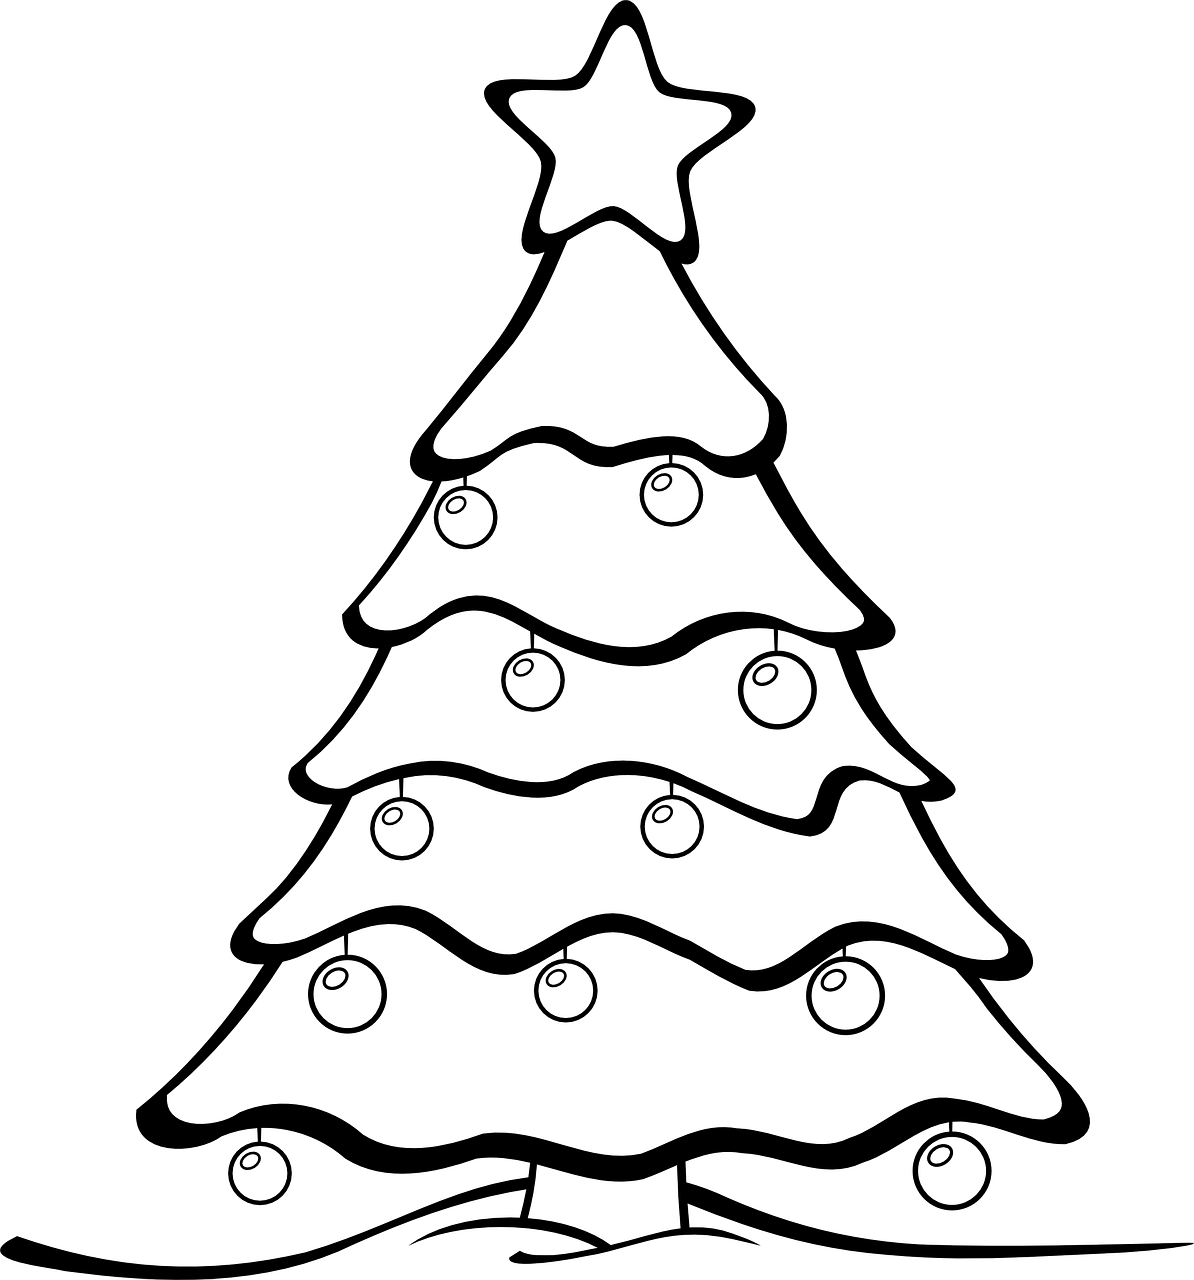 Christmas Tree Coloring Printable With Colour And Design Your Own Printables In The Playroom